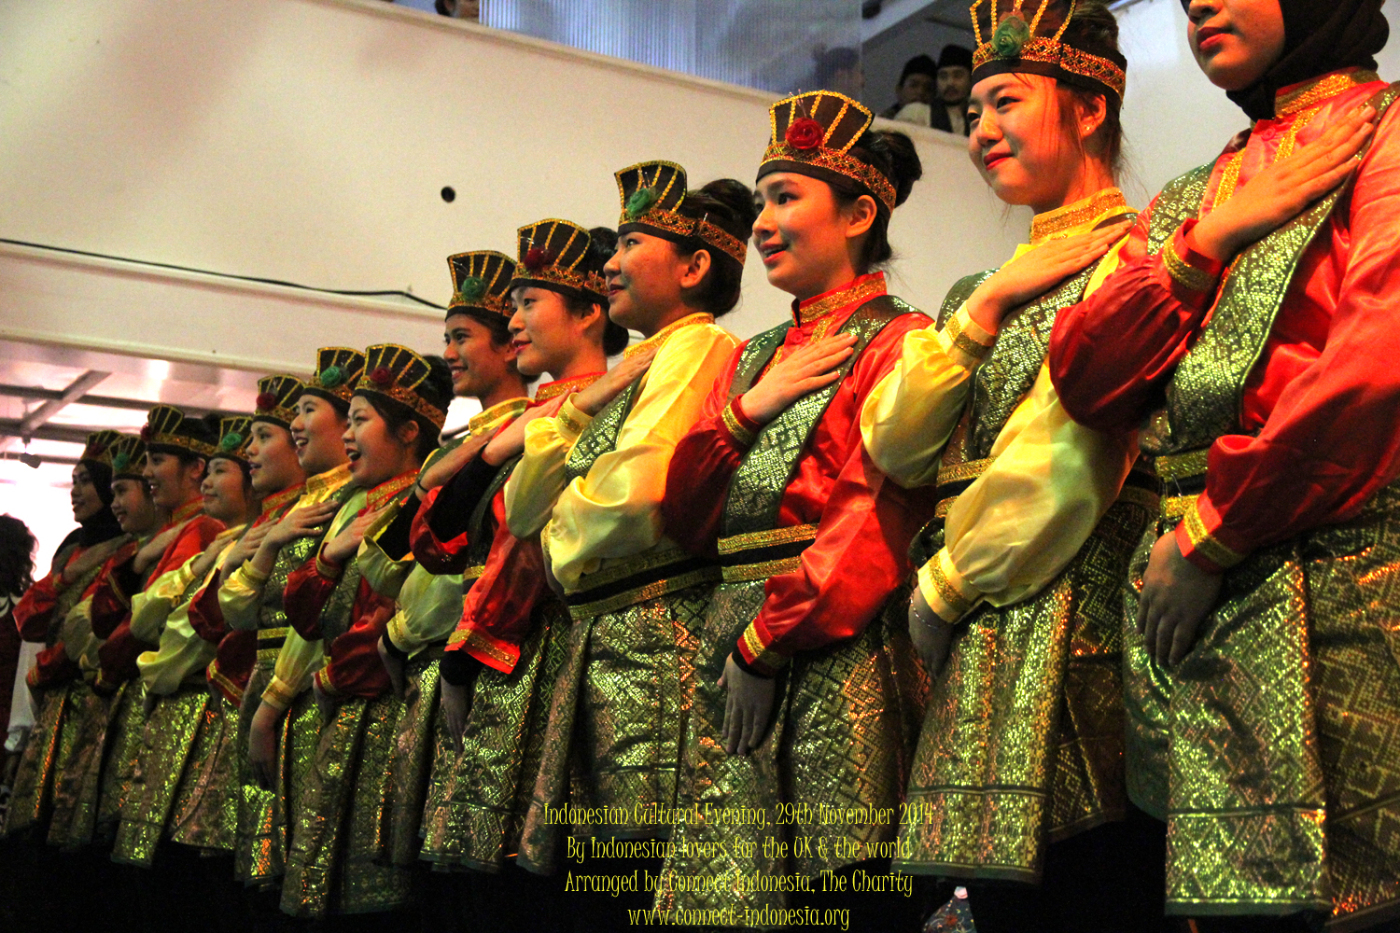 OUR CULTURAL EVENT IN LONDON, CELEBRATING INDONESIAN CULTURE DIVERSITY – NOV 2014